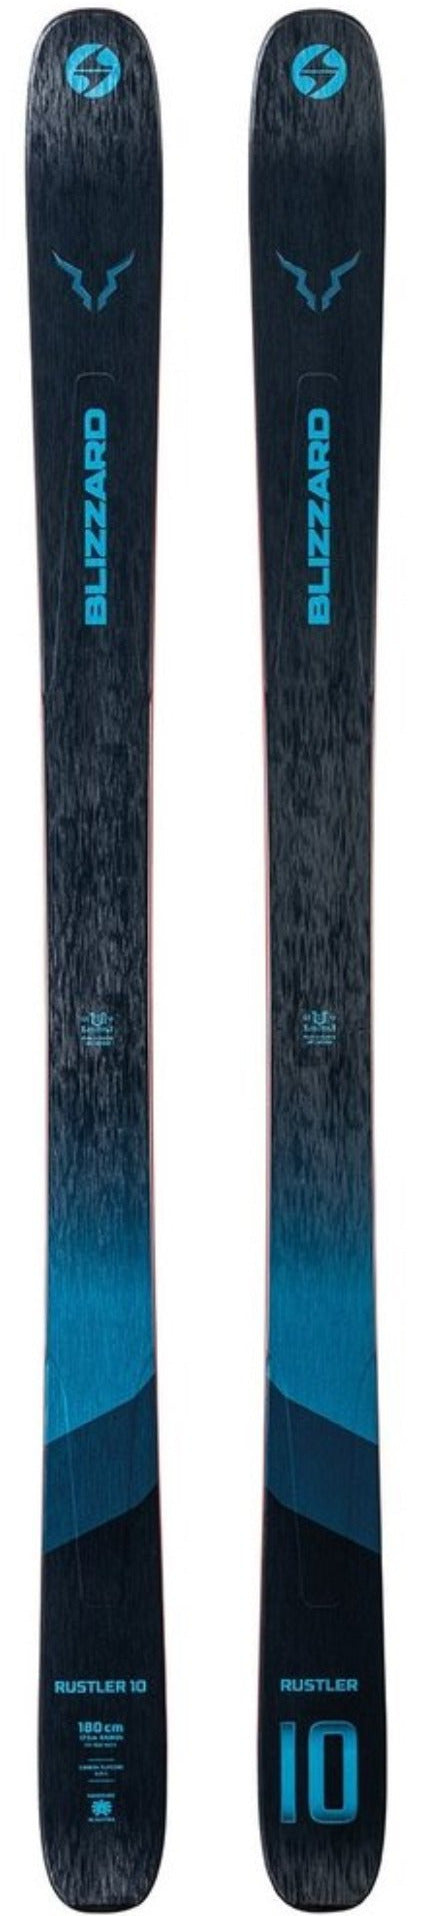 2021 Blizzard Rustler 10 snow skis - ProSkiGuy your Hometown Ski Shop on the web